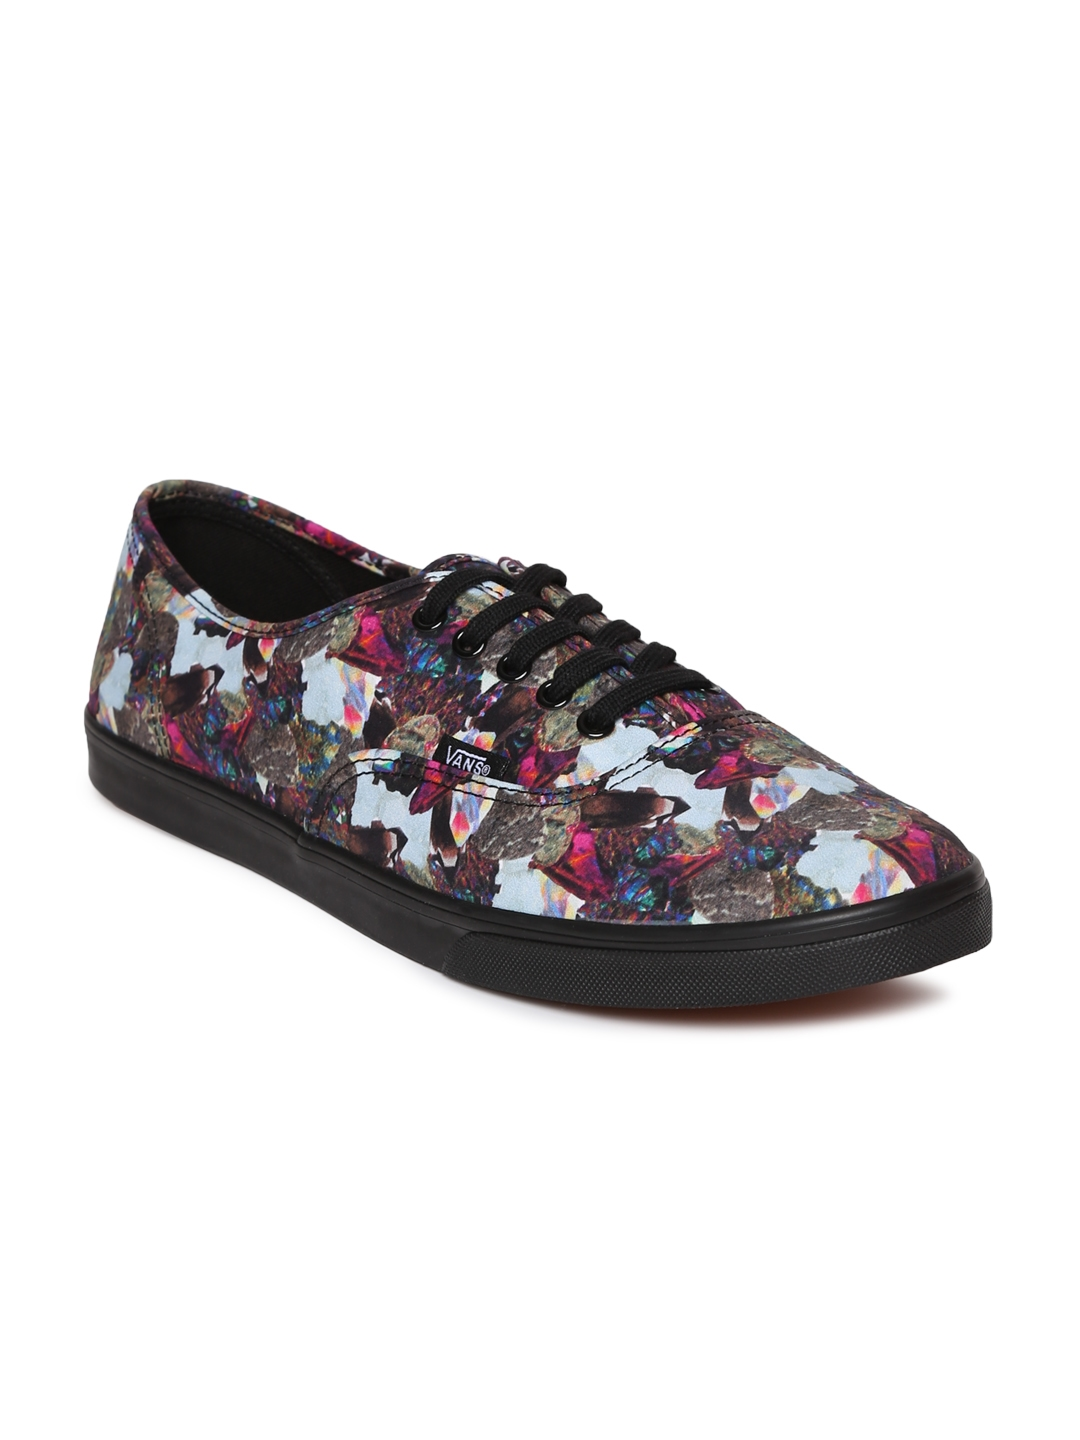 bff2dcc6f2 Buy Vans Unisex Multicoloured Authentic Lo Pro Sneakers - Casual ...